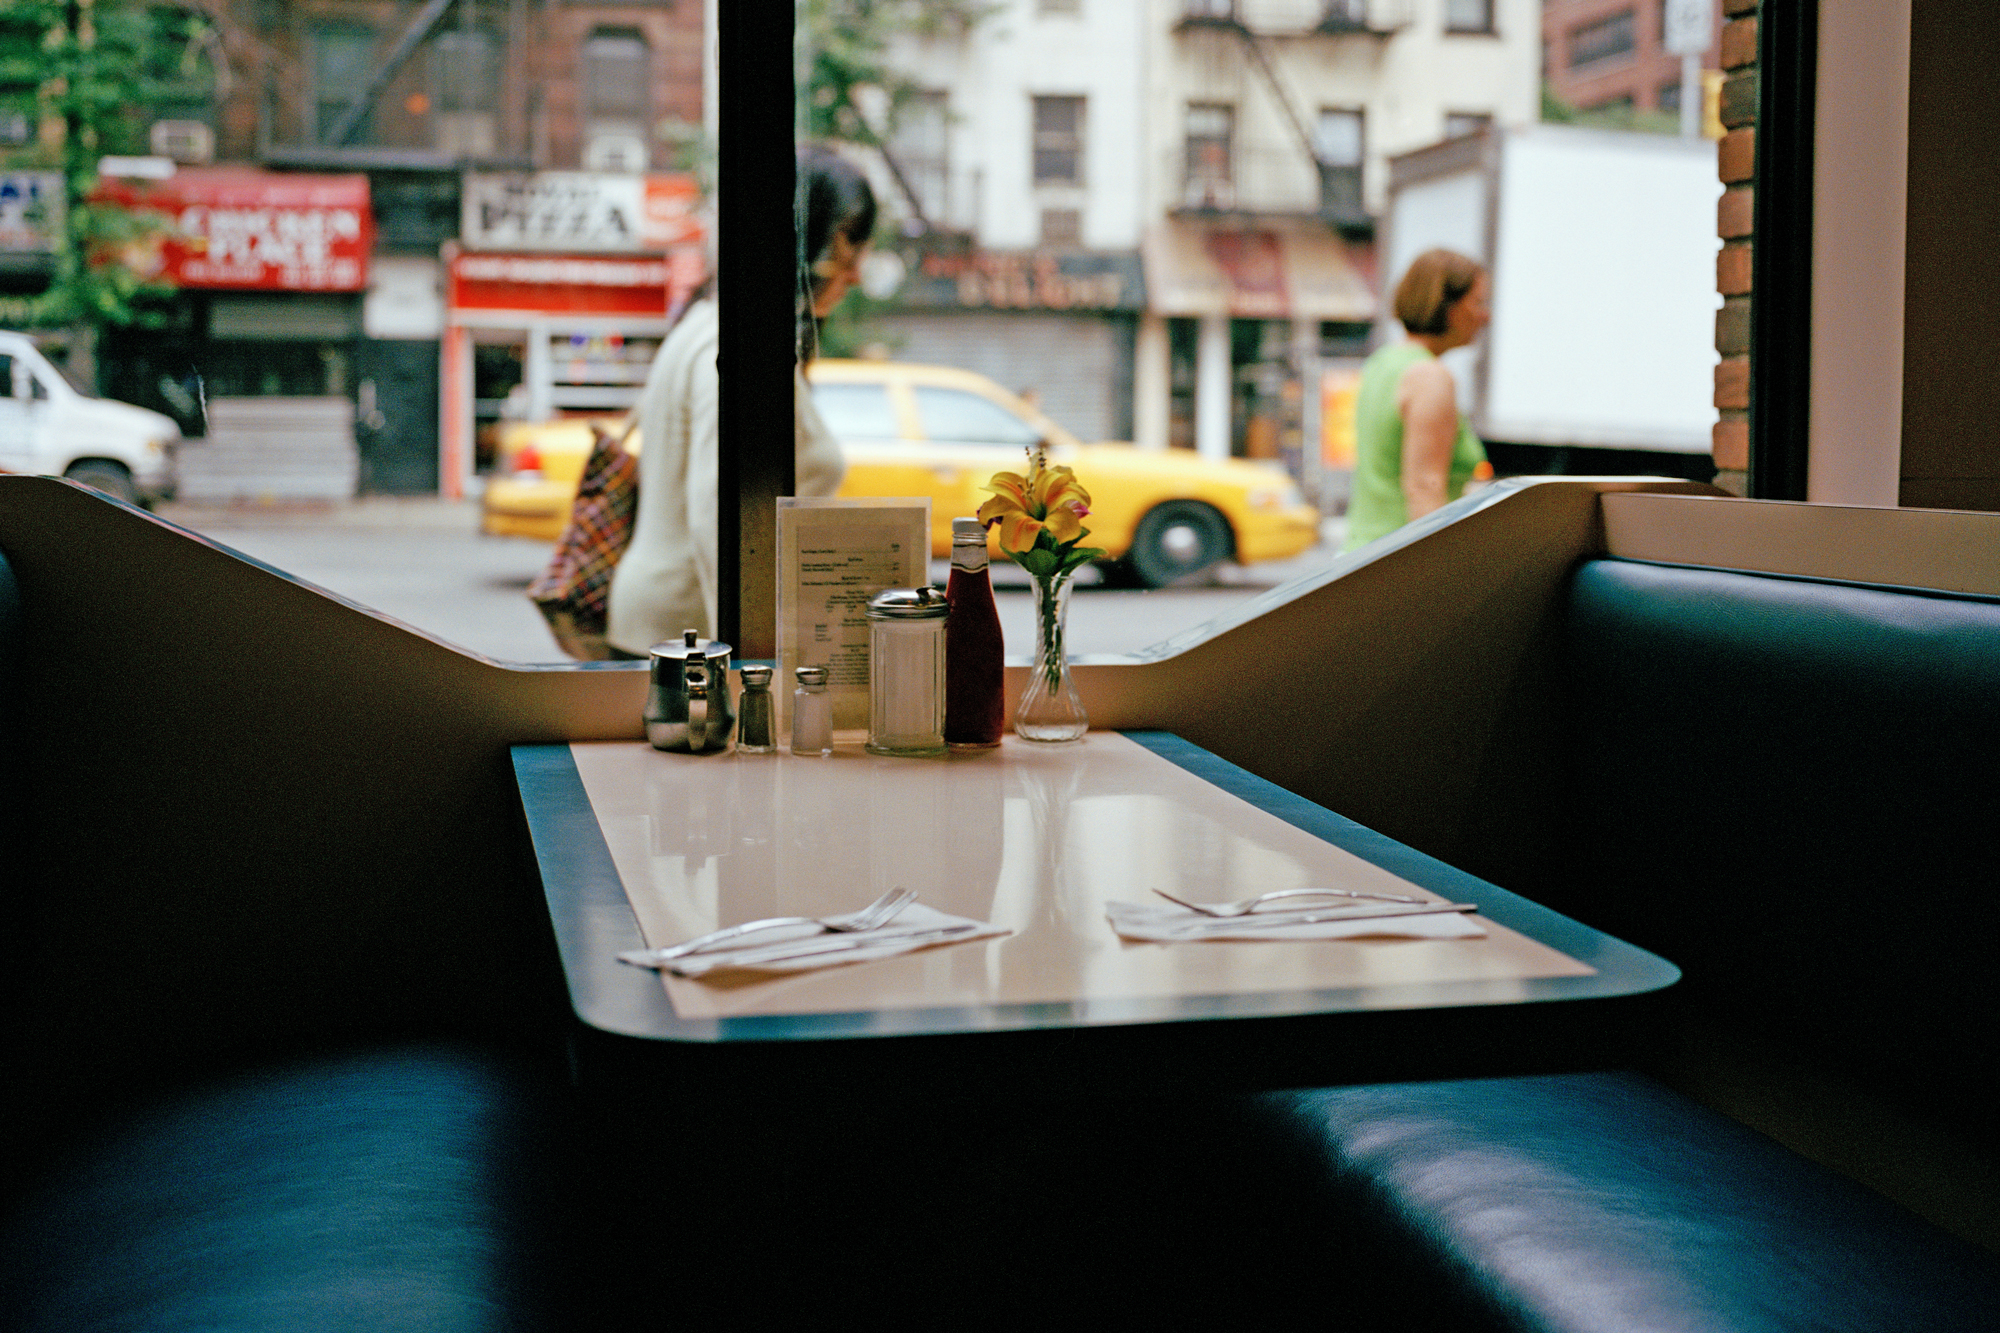 NYC Gives $3Million to Small Restaurants